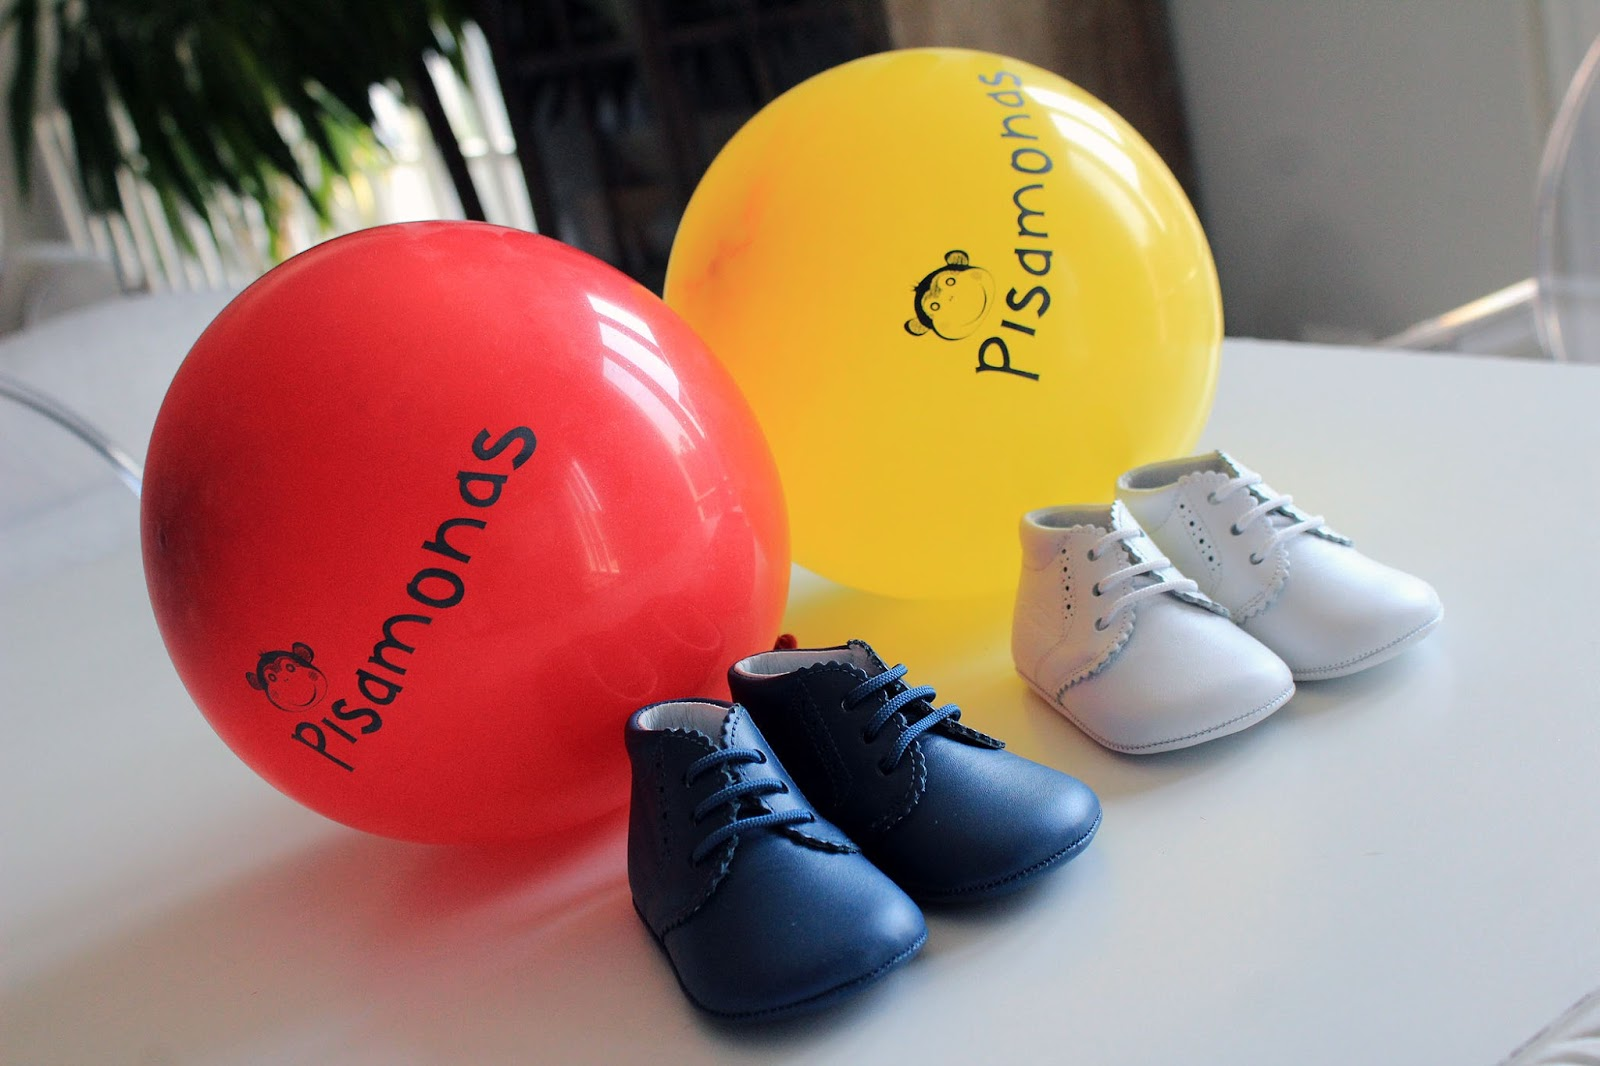 Eniwhere Fashion - Pisamonas kids shoes - Made in Spain